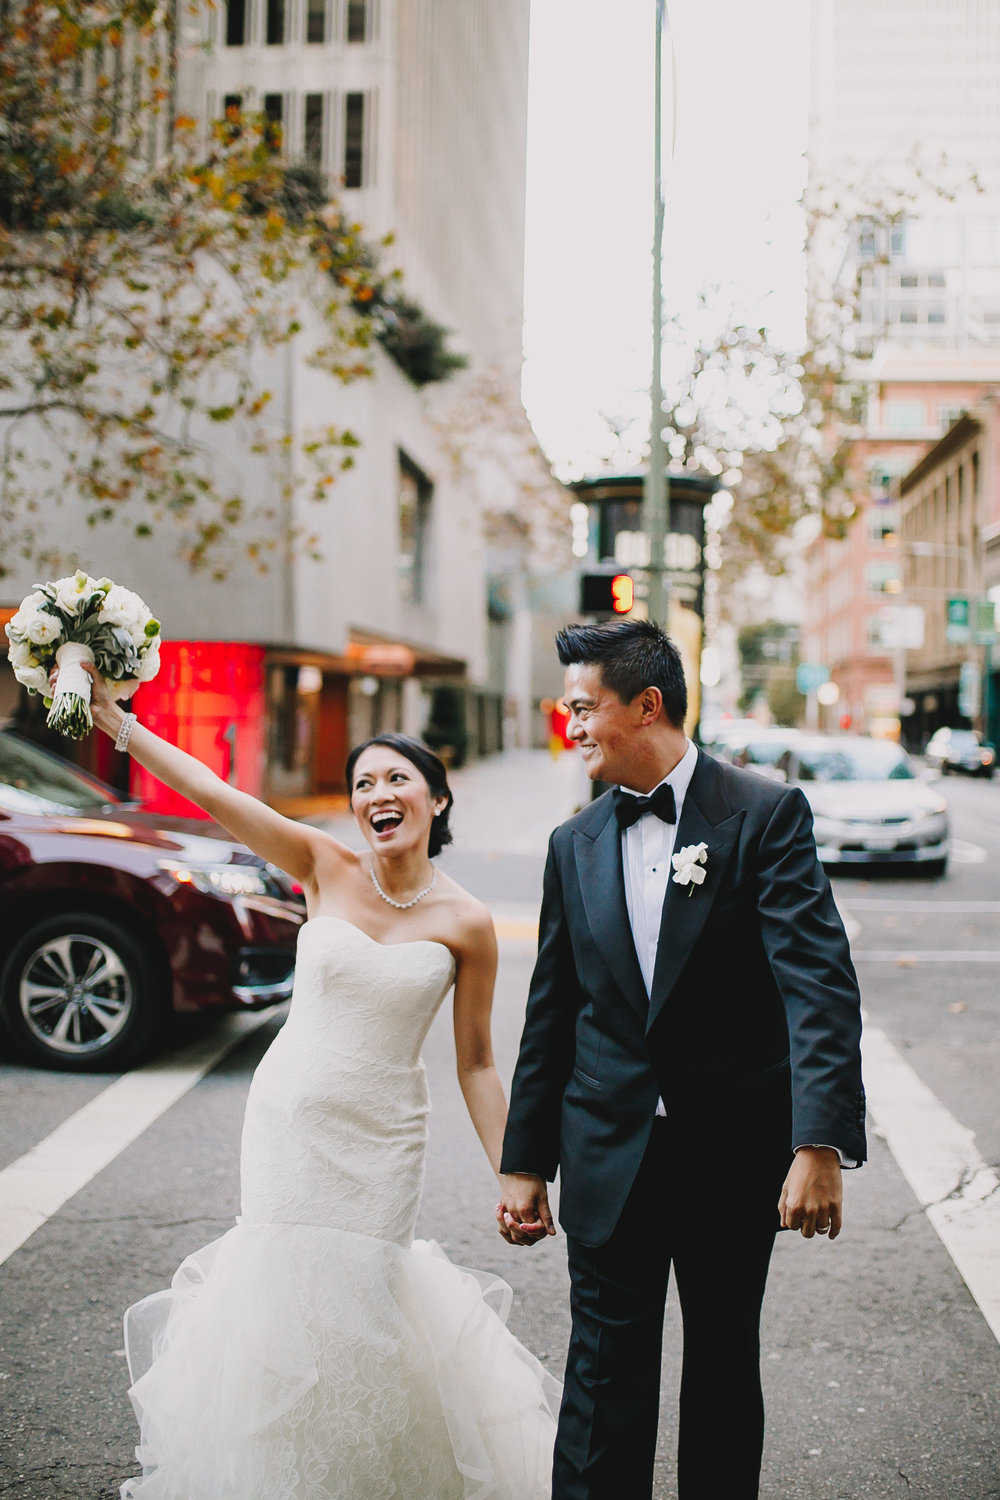 Archer Inspired Photography San Francisco Bay Area California Wedding Photographer Natural Light Lifestyle Intimate-20.jpg